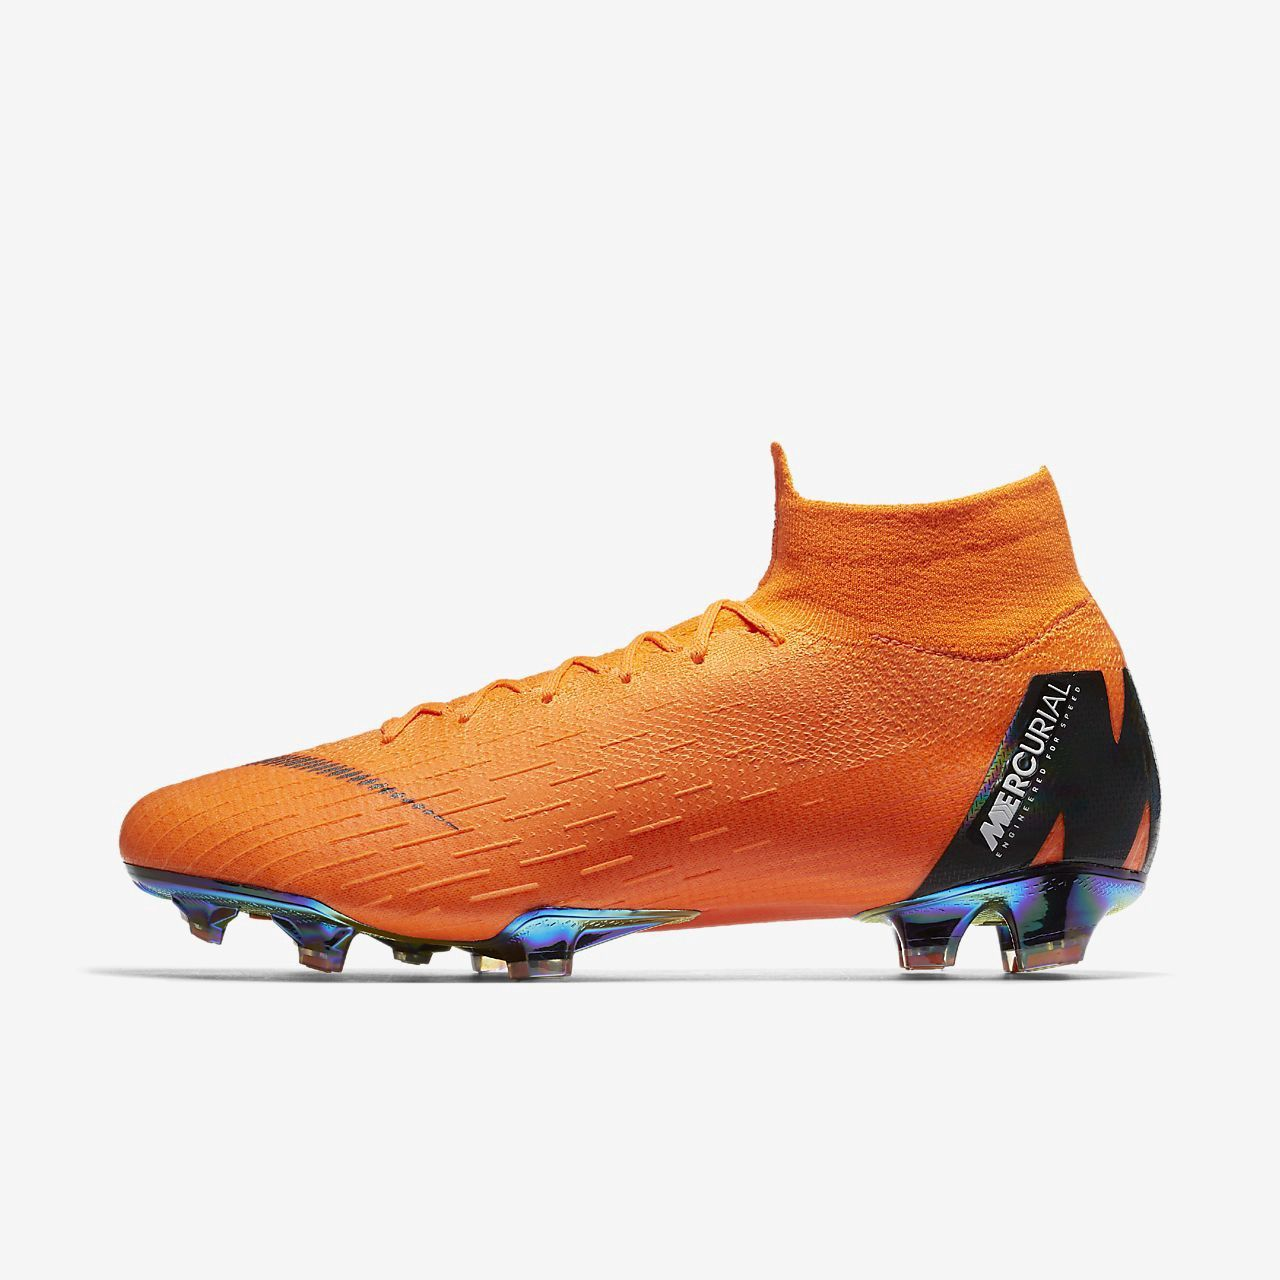 wholesale dealer e36d1 93032 Nike Mercurial Superfly 360 Elite Firm-Ground Soccer Cleat - M 8.5   W 10